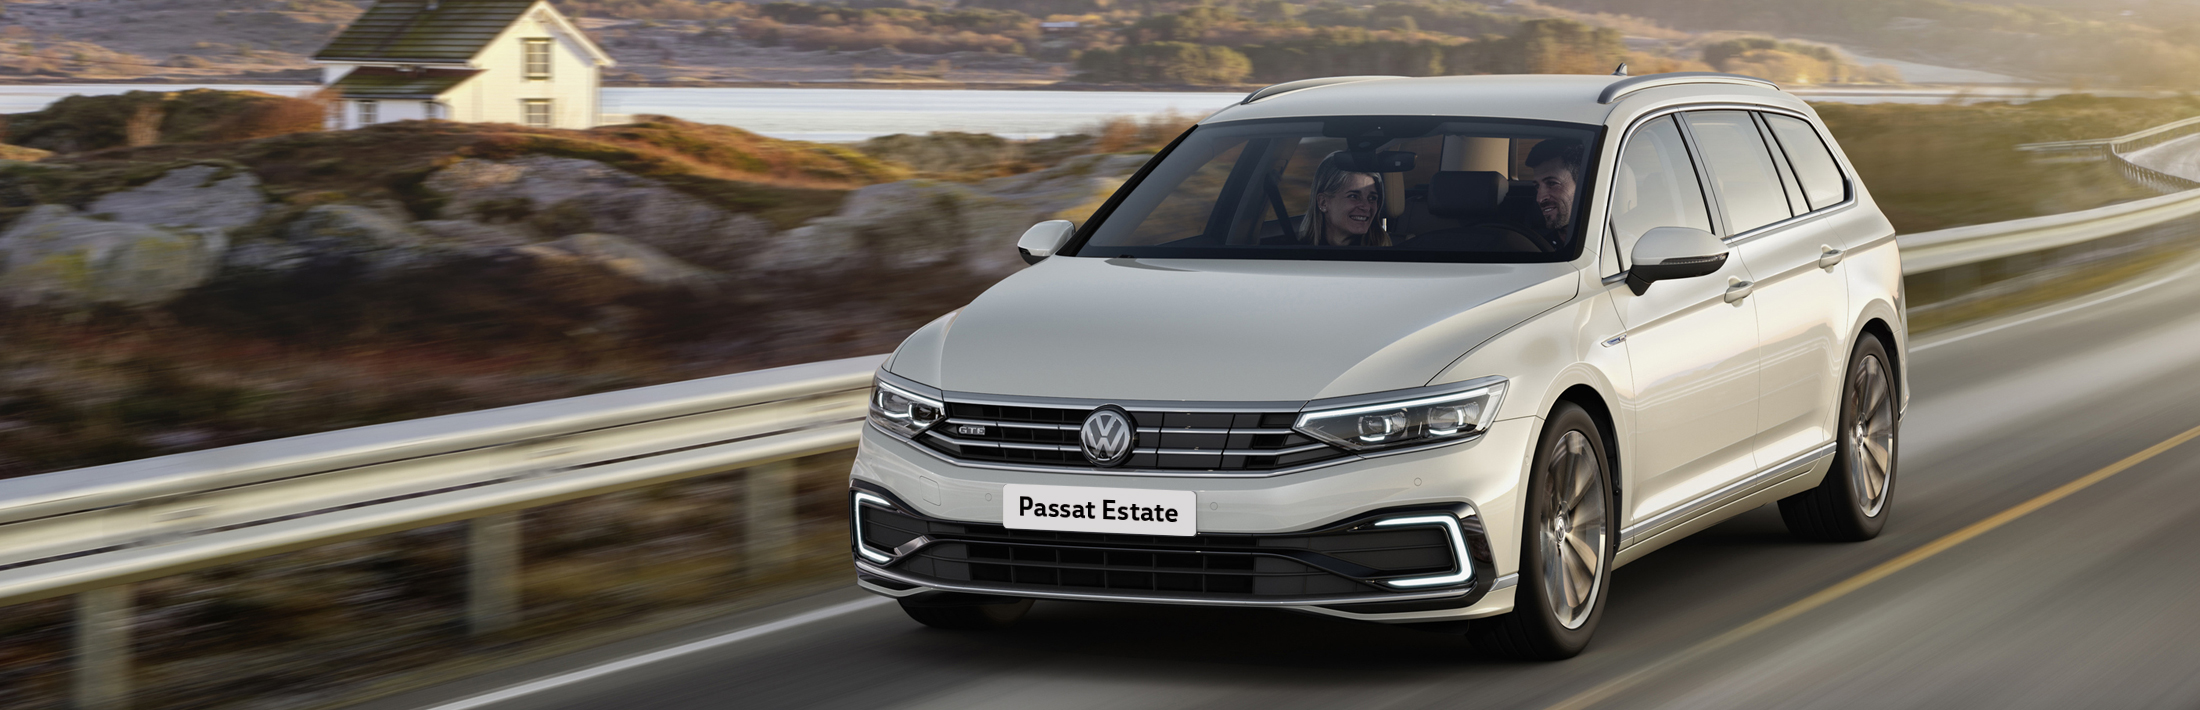 Passat Estate Offer Slider 1